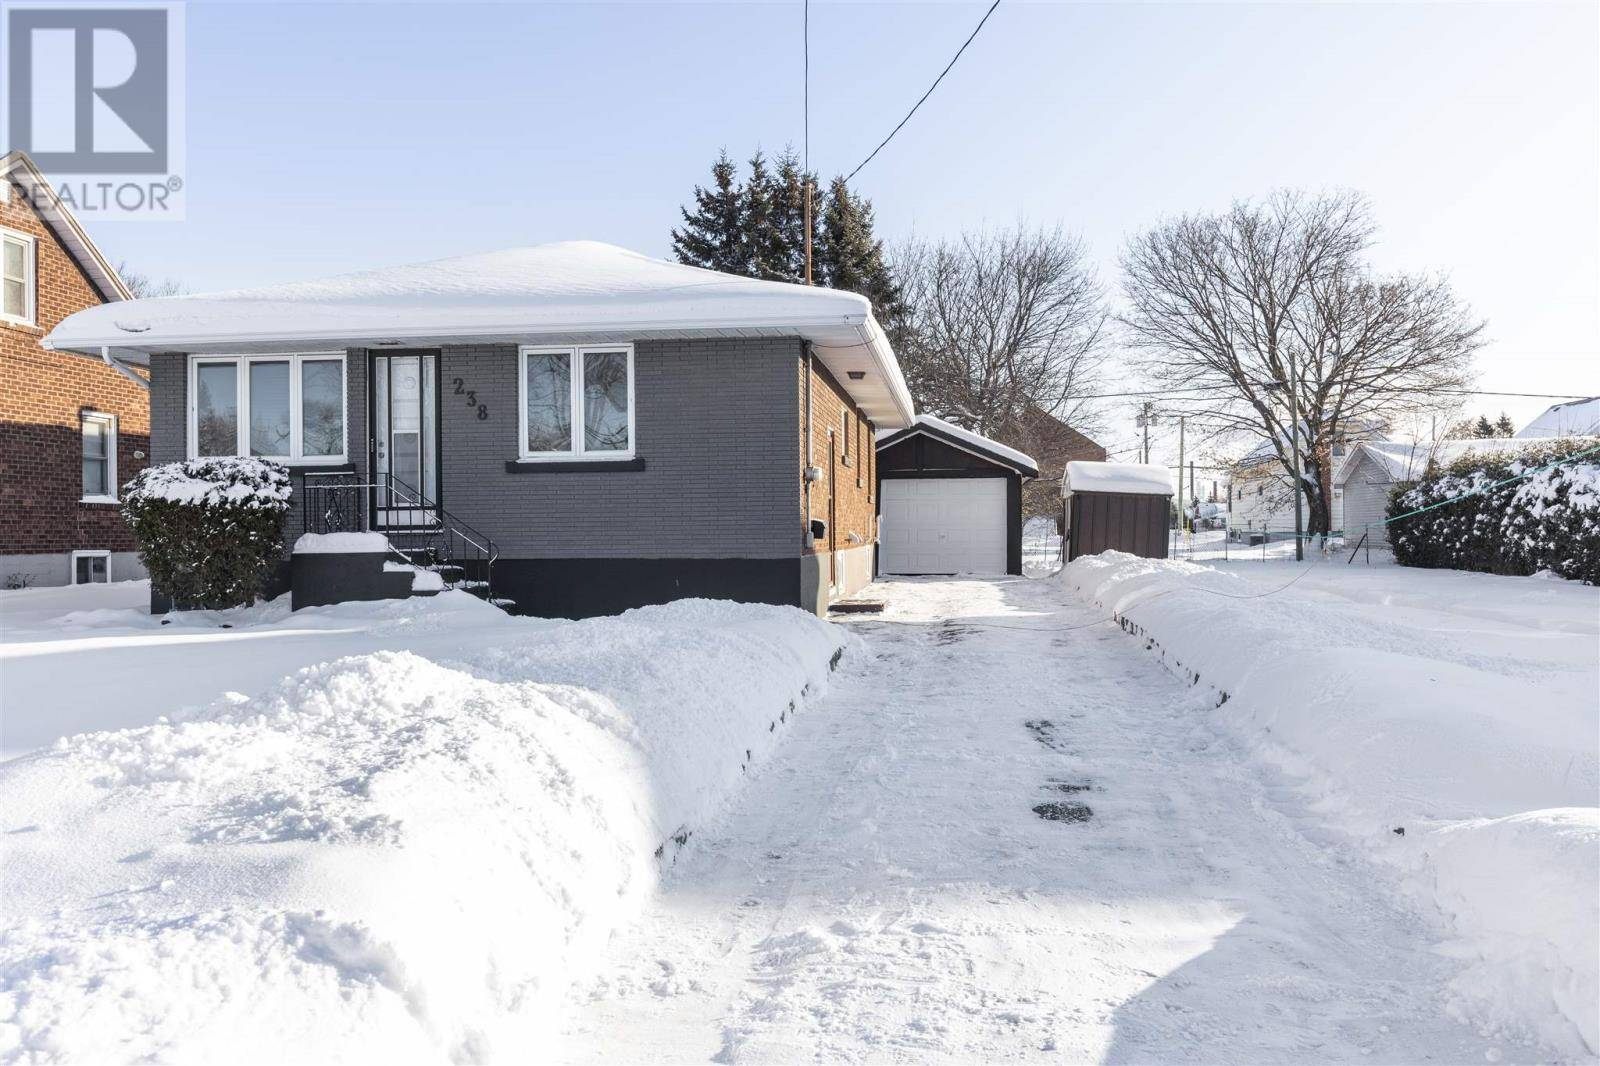 House for sale at 238 Pittsburgh Ave Sault Ste. Marie Ontario - MLS: SM127620